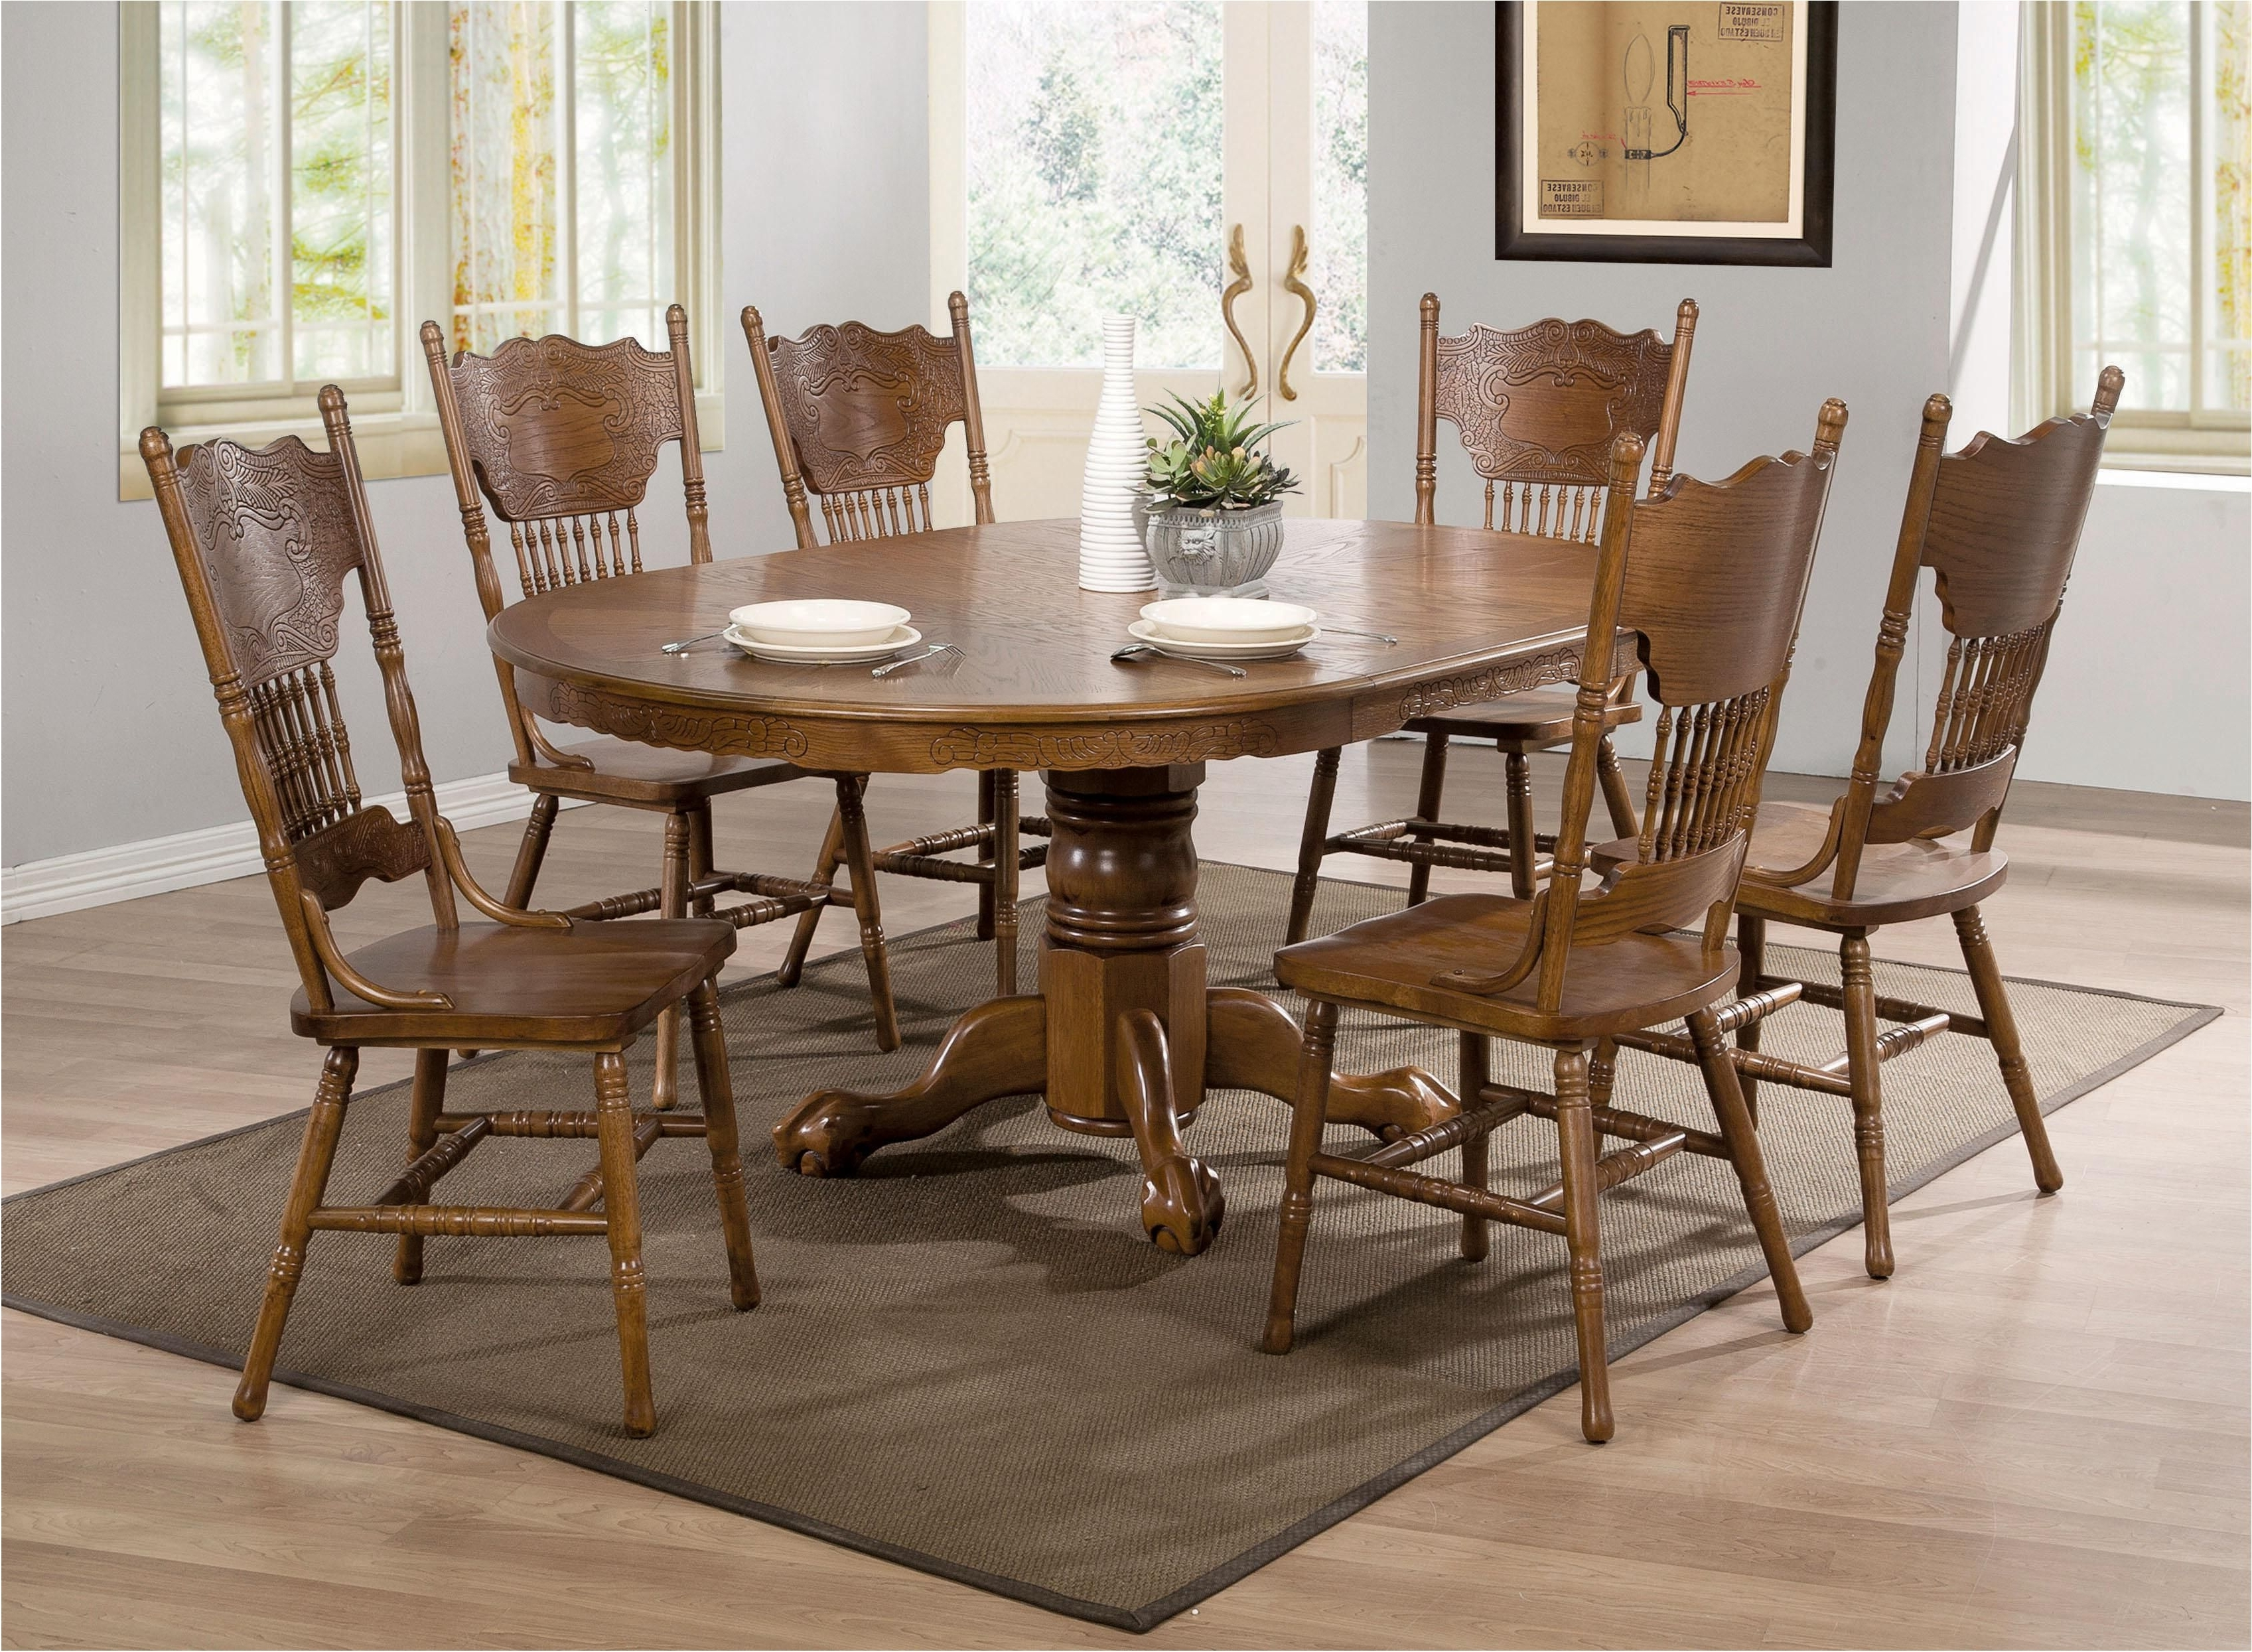 Popular Incredible Decorative Oak Dining Table Set 16 Kitchen And Chairs Pertaining To Oak Dining Tables Sets (View 23 of 25)